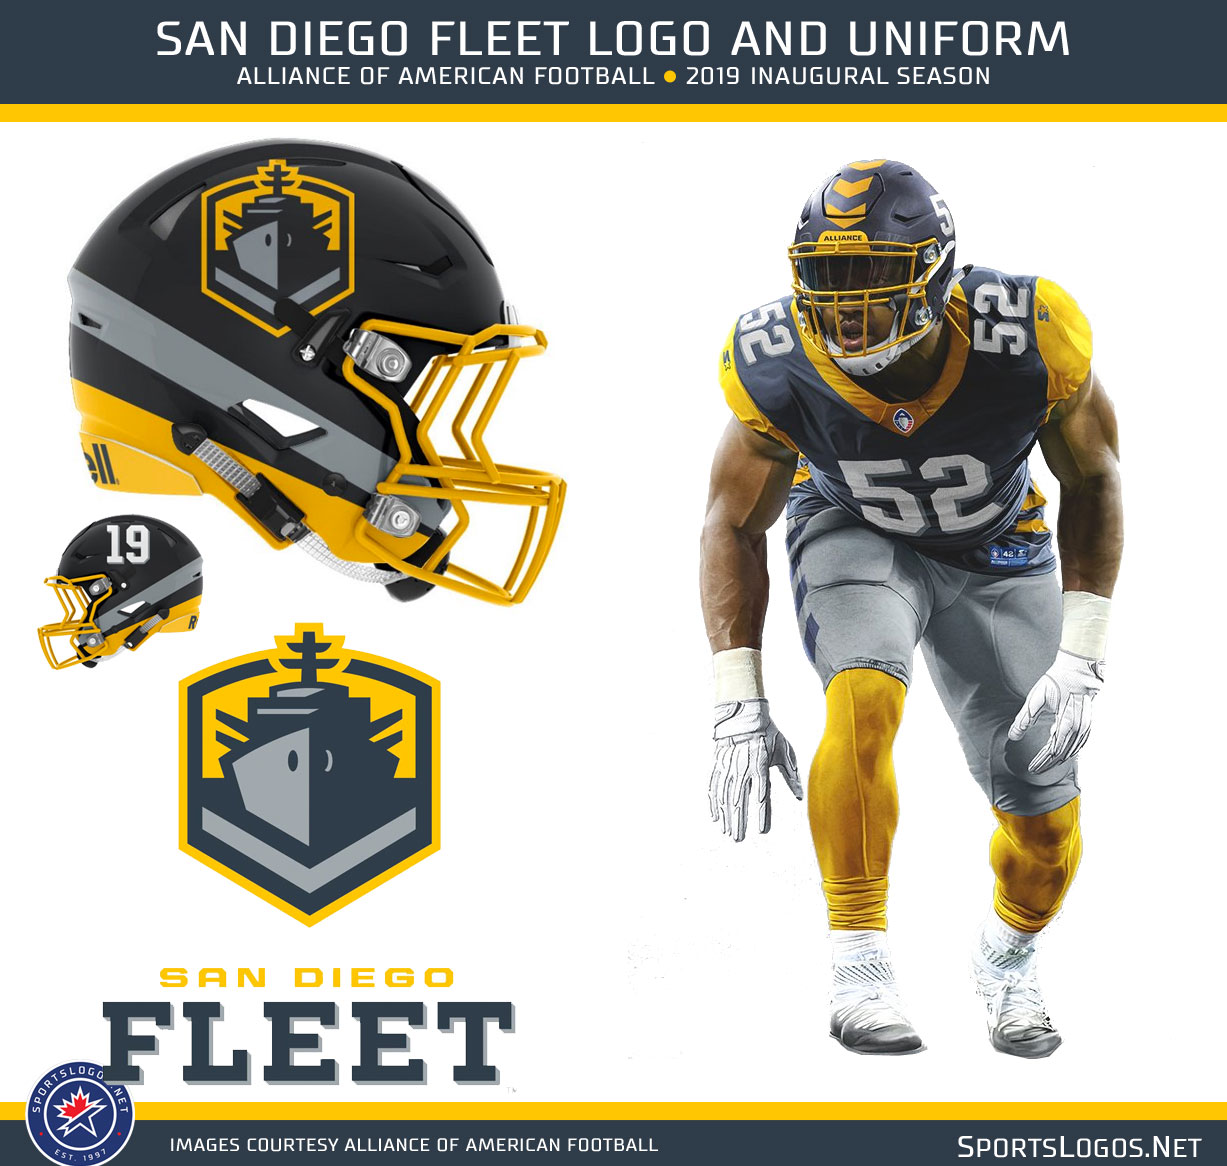 San-Diego-Fleet-AAF-Uniforms-2019.jpg